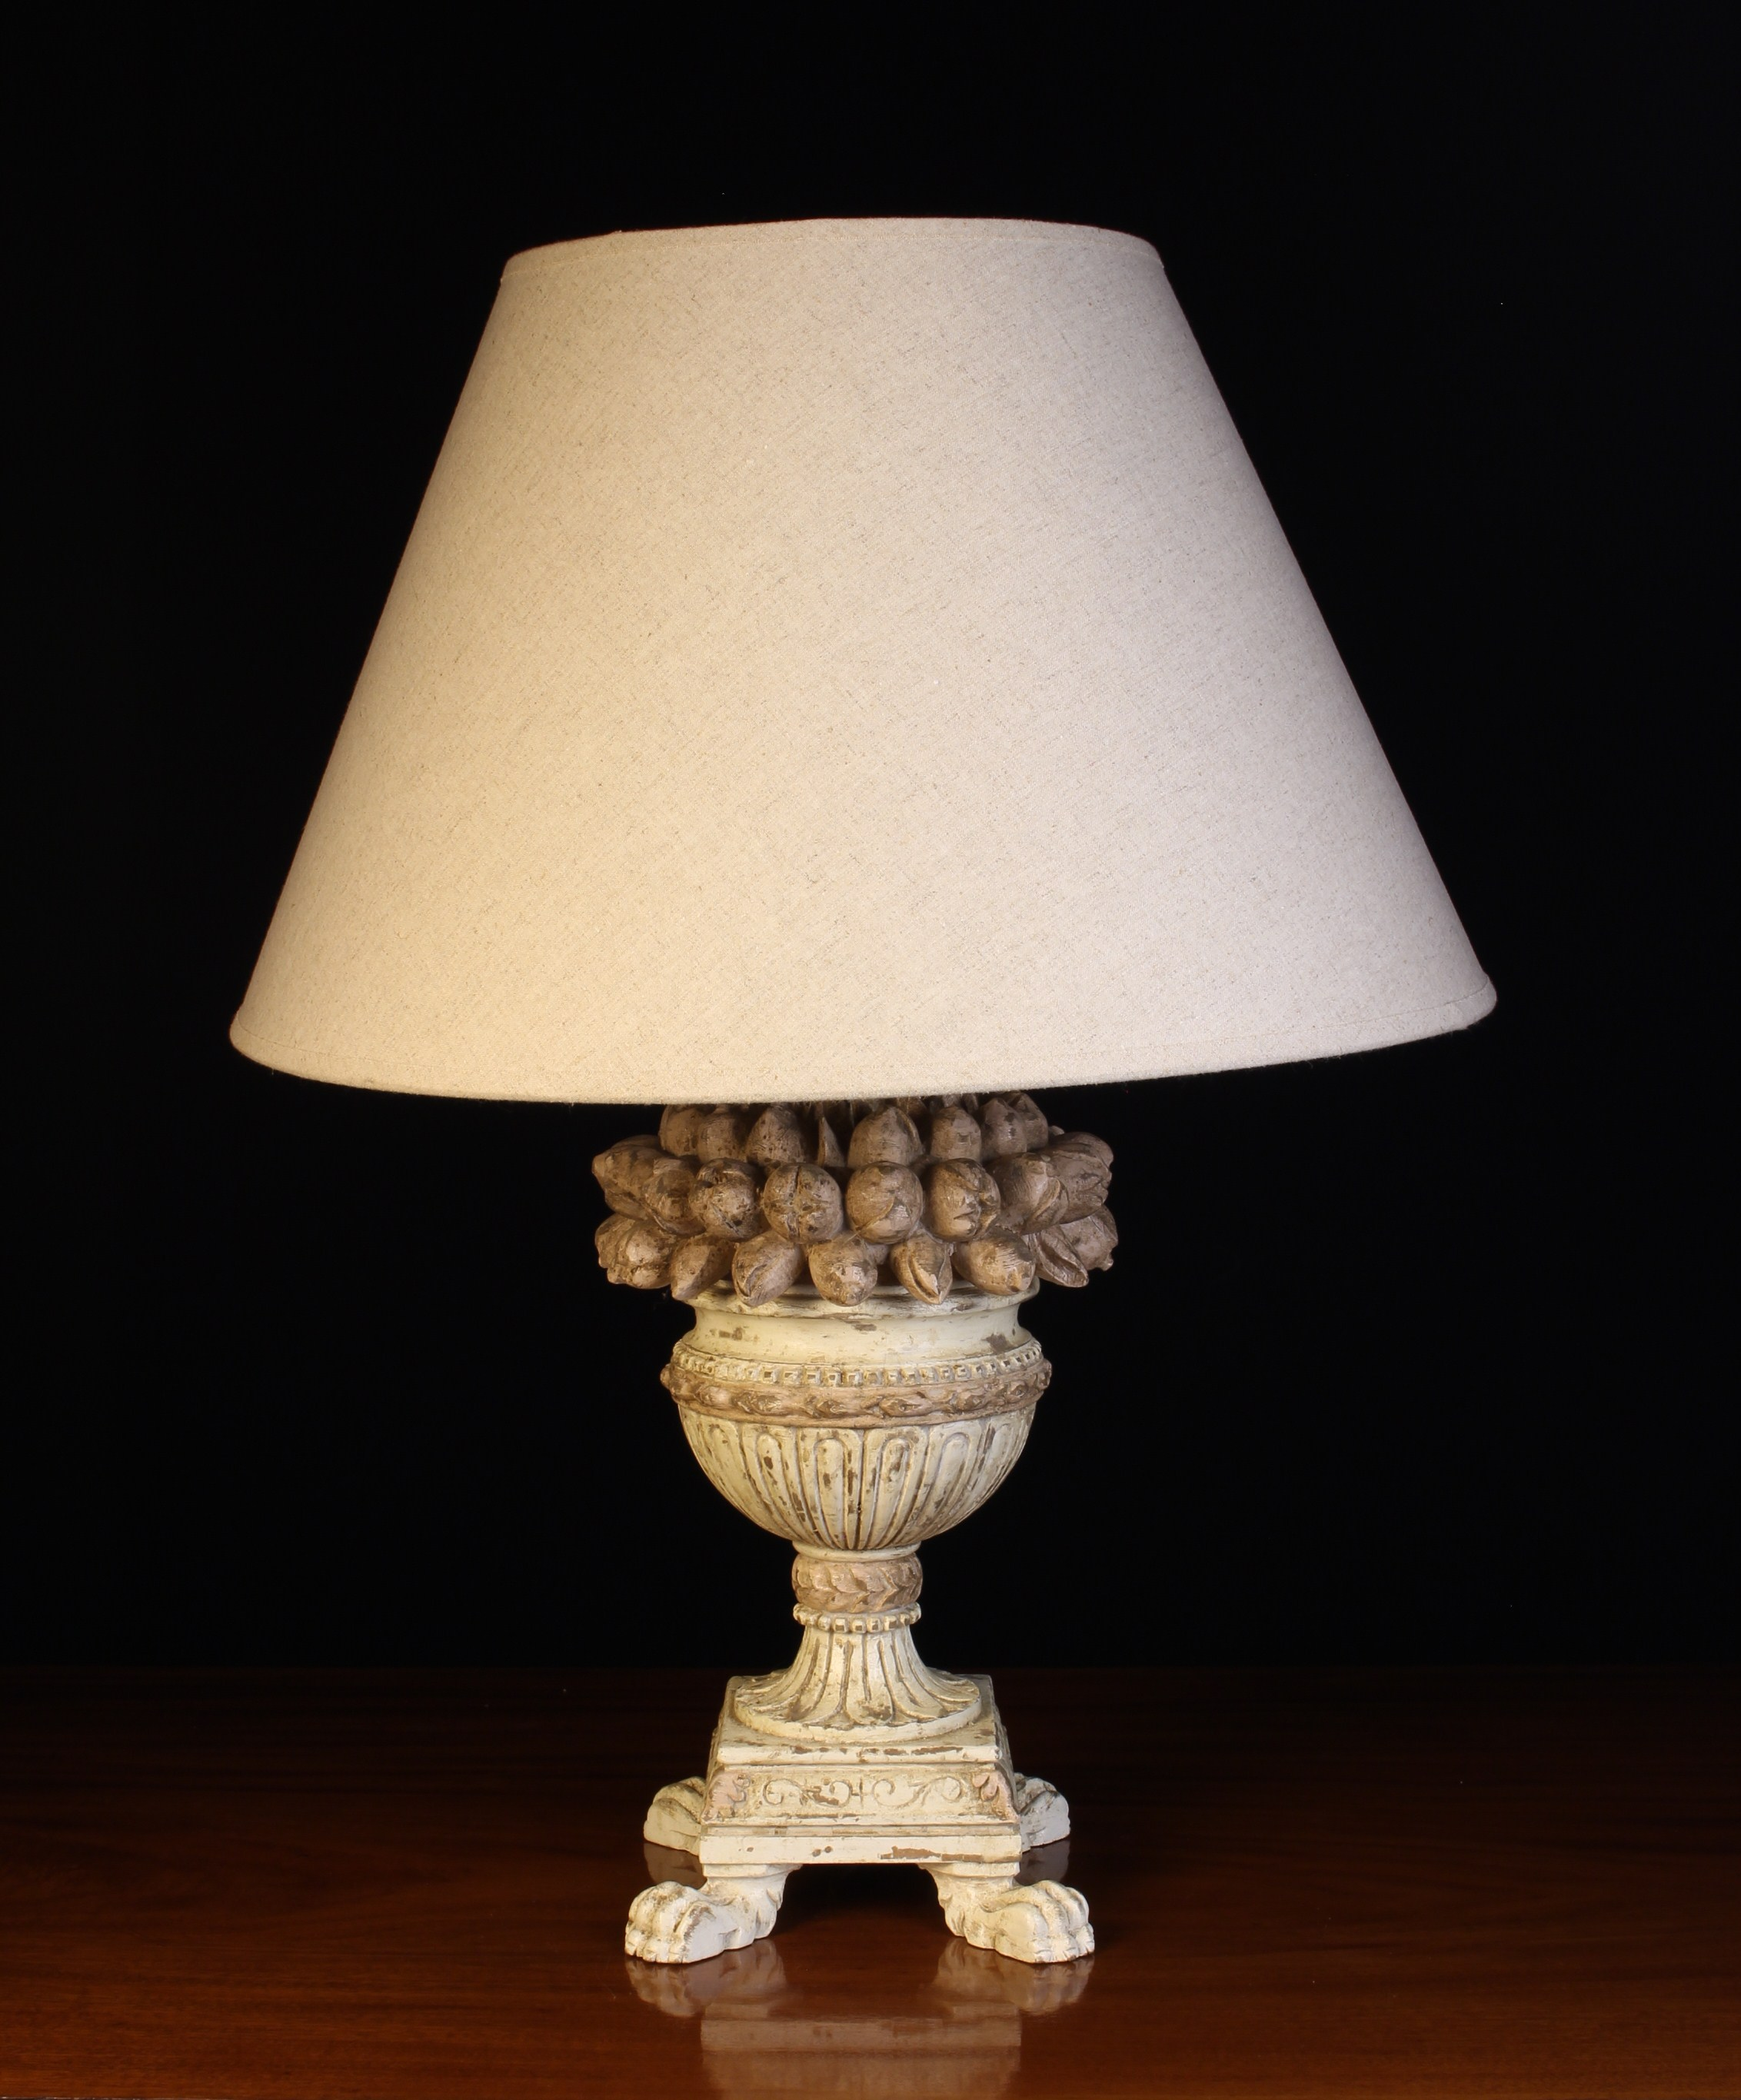 A Decorative Wooden Table Lamp with distressed white paint-work and an ecru linen shade. - Image 2 of 3